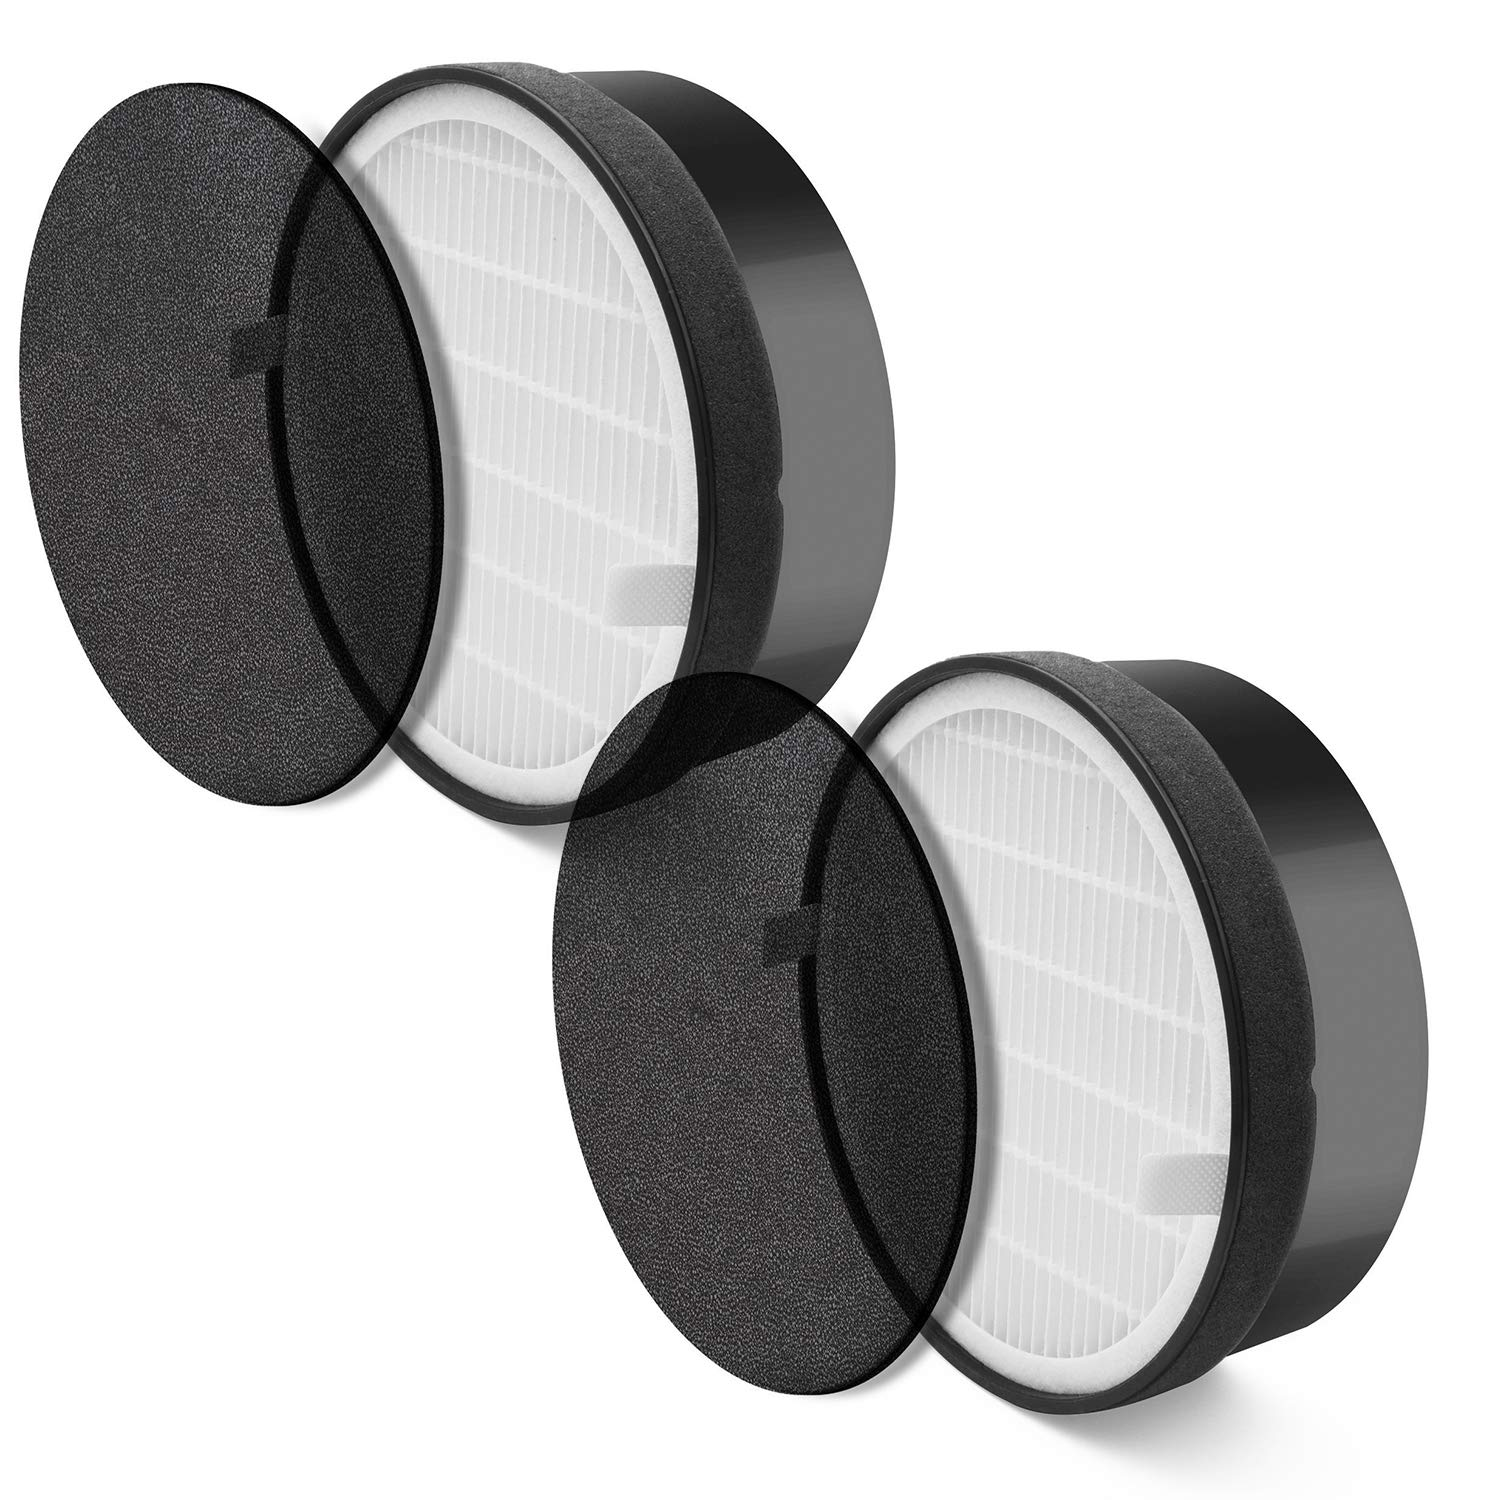 LEVOIT LV-H132 Air Purifier Replacement Filter, LV-H132-RF (2 Pack)